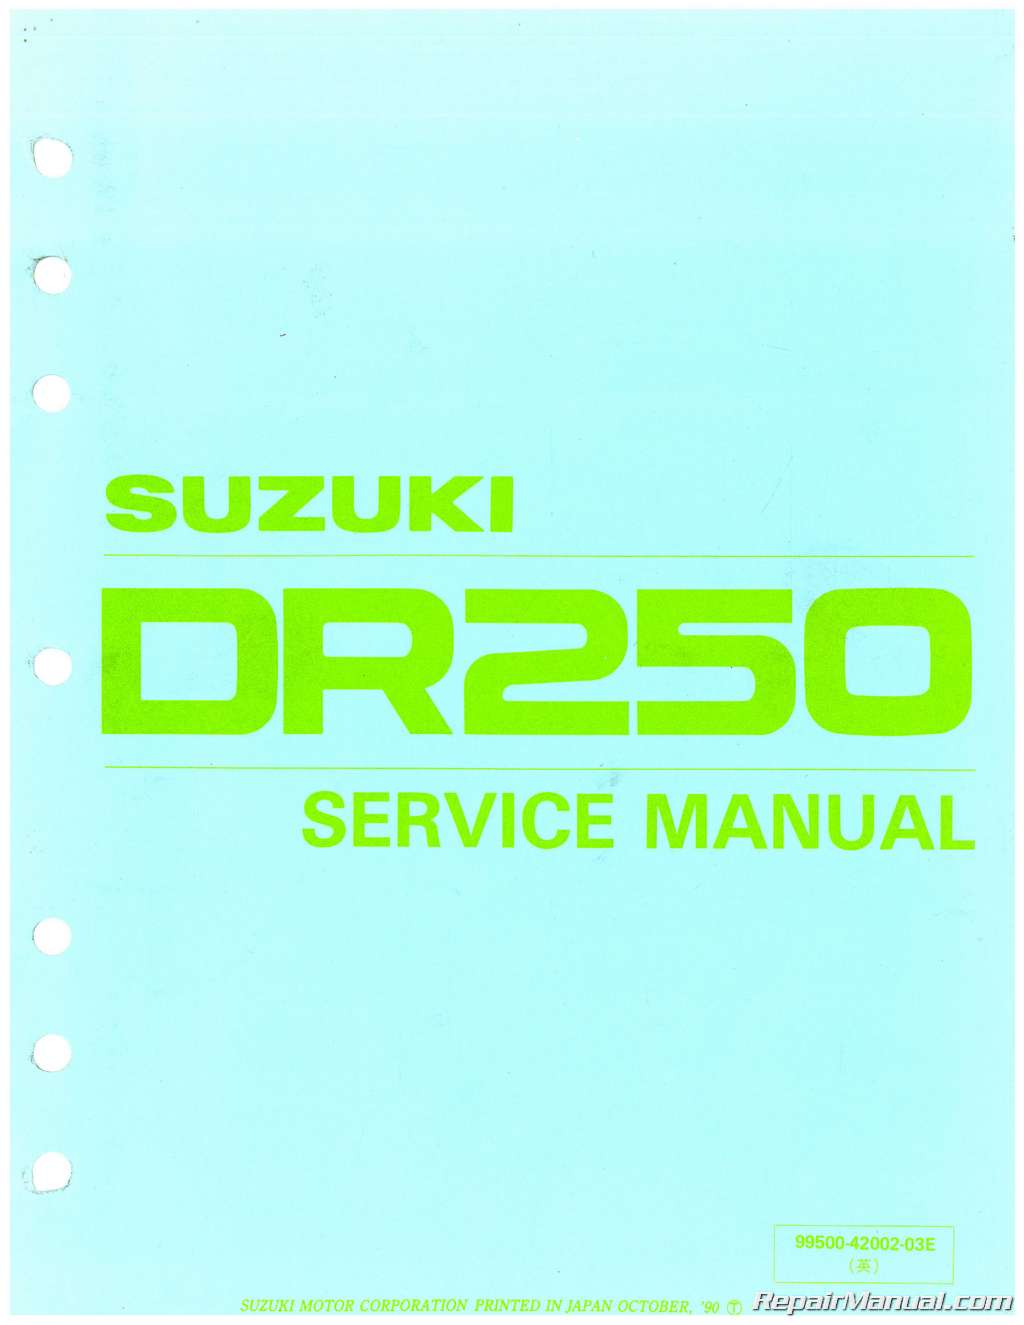 1982 1985 suzuki dr250 sp250 motorcycle service manual rh repairmanual com Honda 6 Cylinder Motorcycle Kawasaki Parts Manual